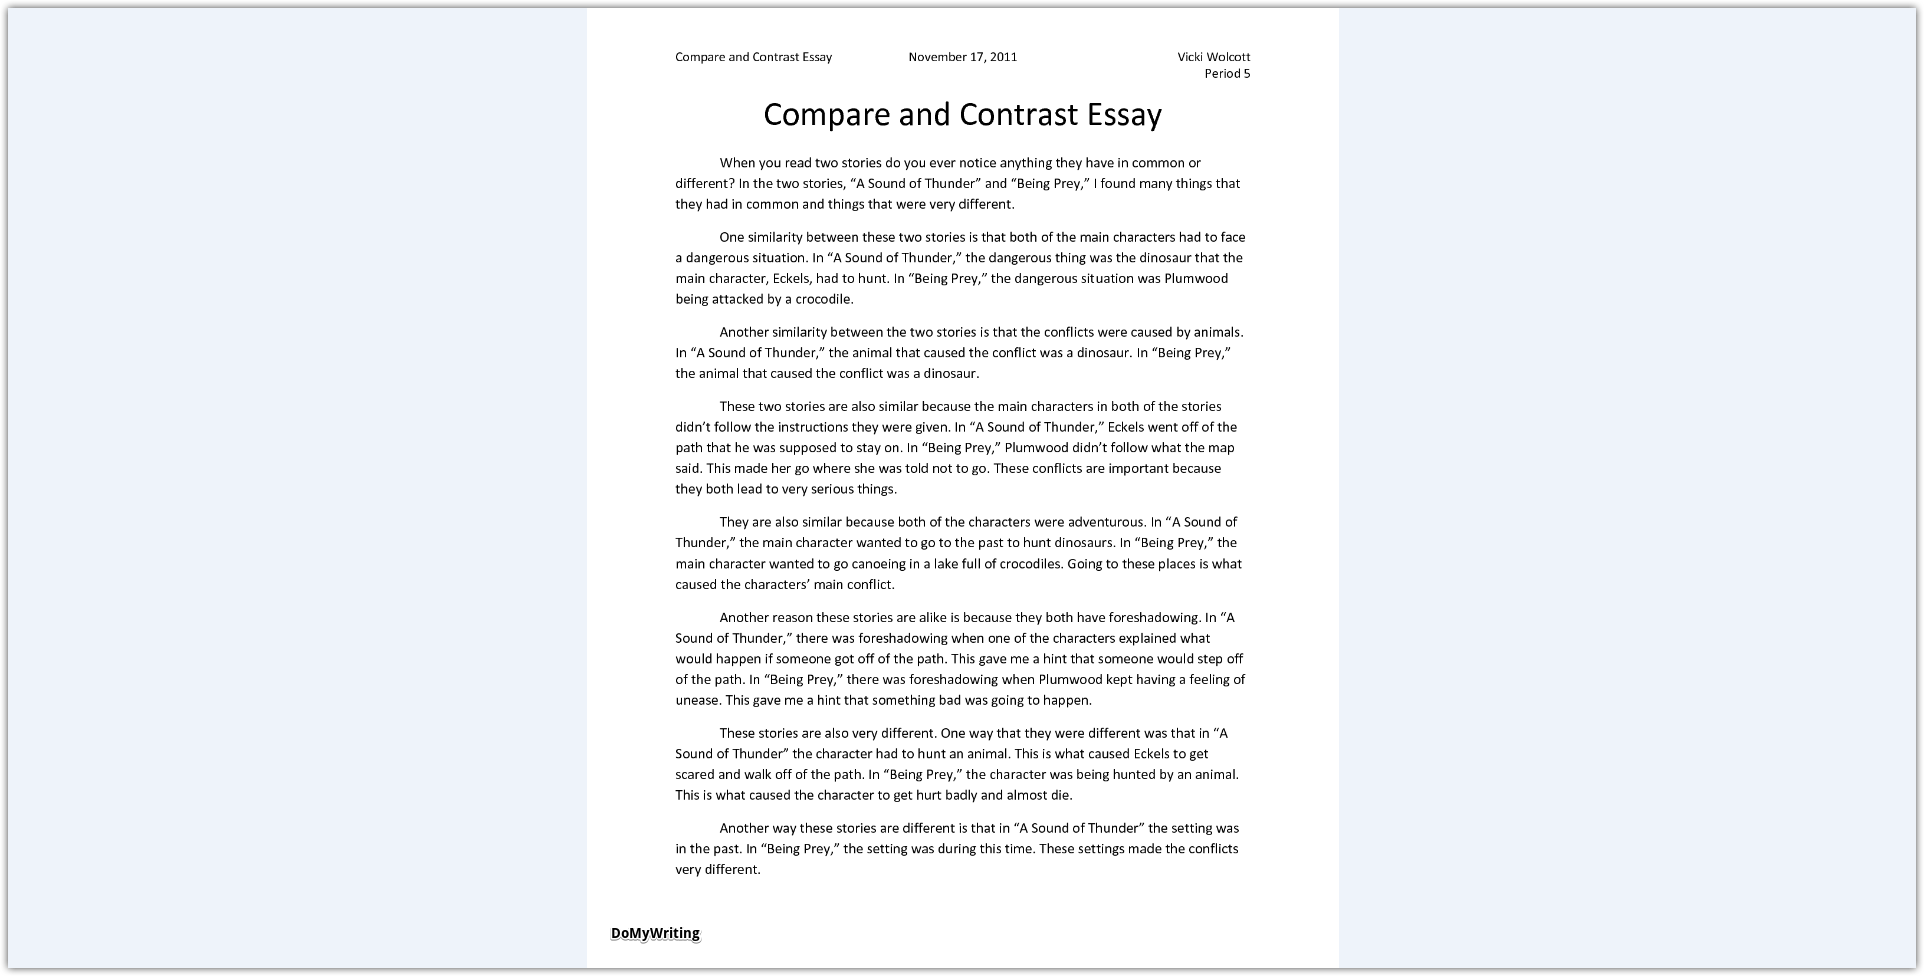 012 Compare And Contrast Essays Sample Archaicawful Essay Pdf High School College For 5th Grade Full